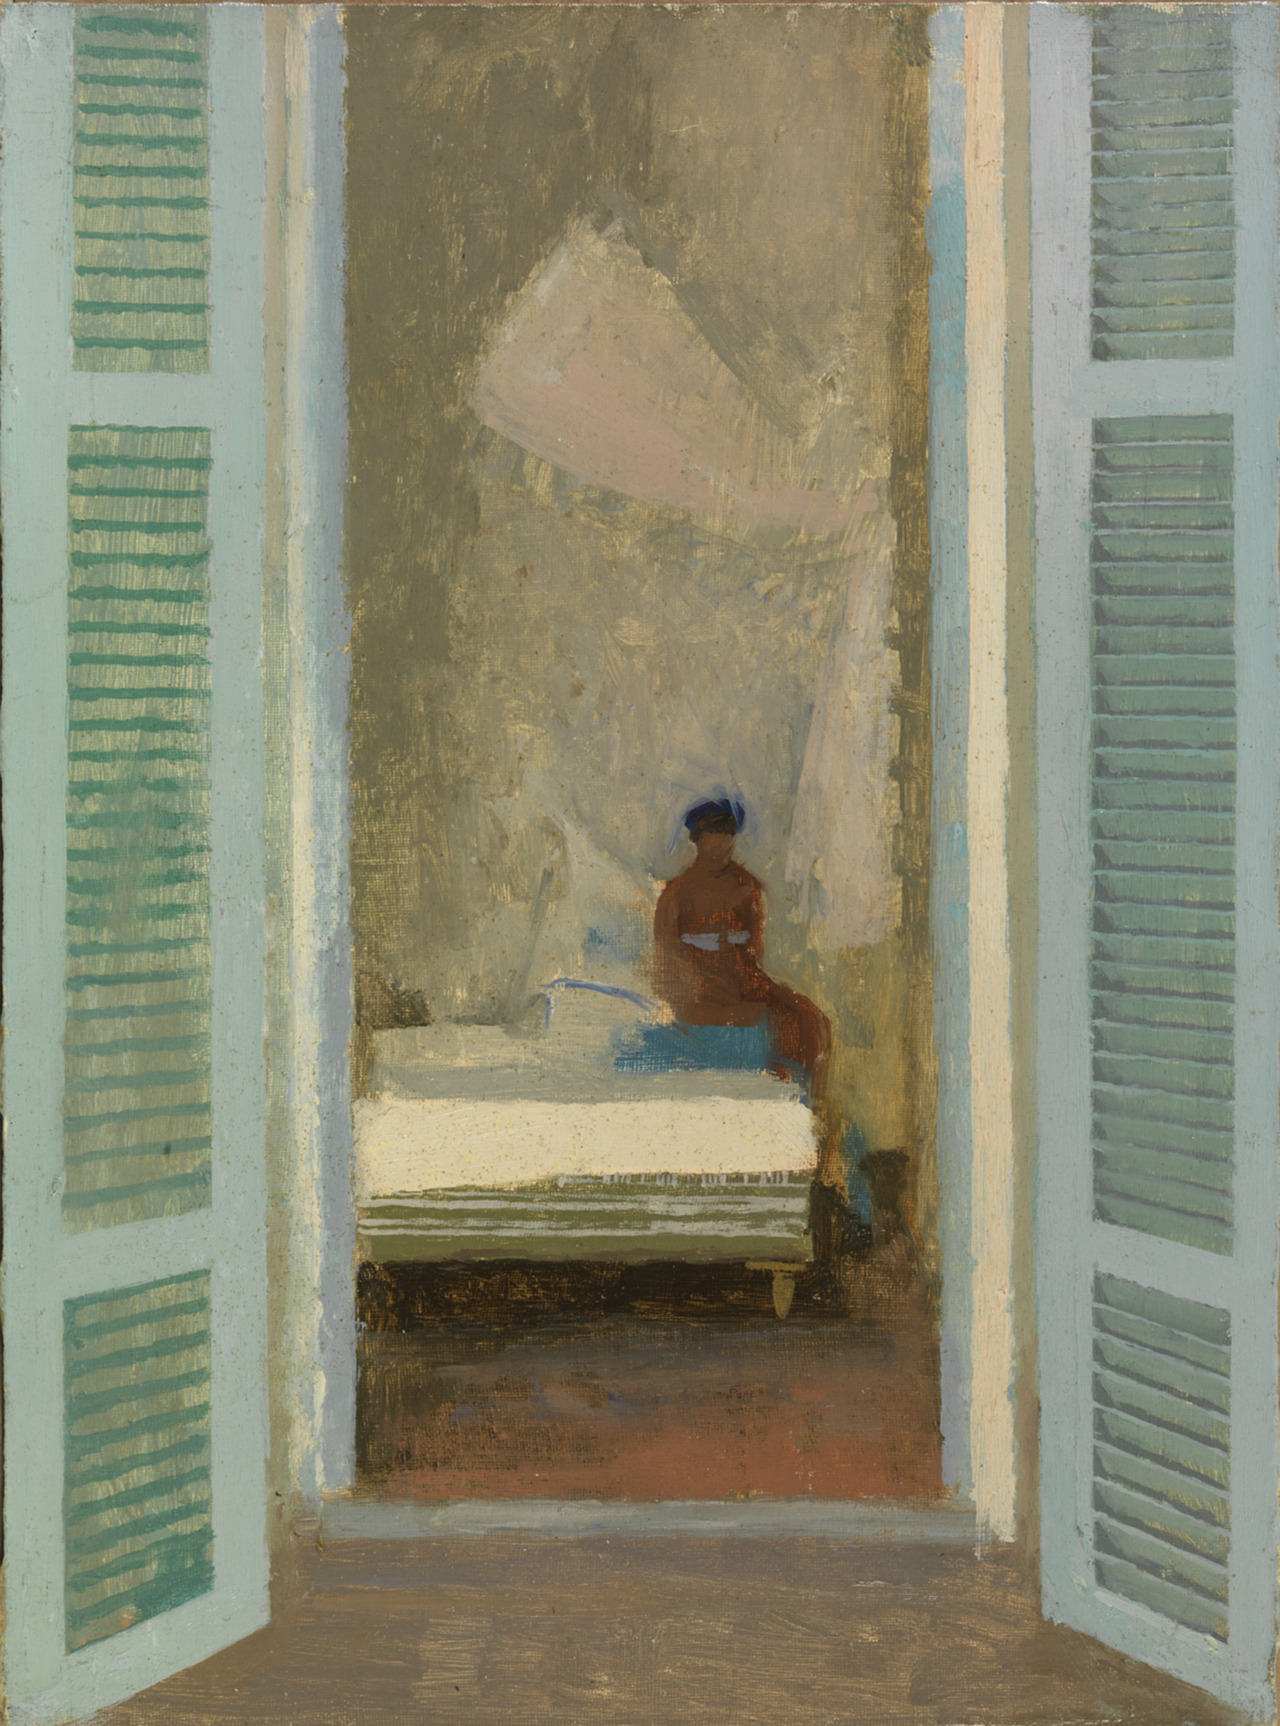 Lionel Bulmer (1919-1992) - The Turquoise Shutters, N/D. Oil on board. Messum's, London, UK